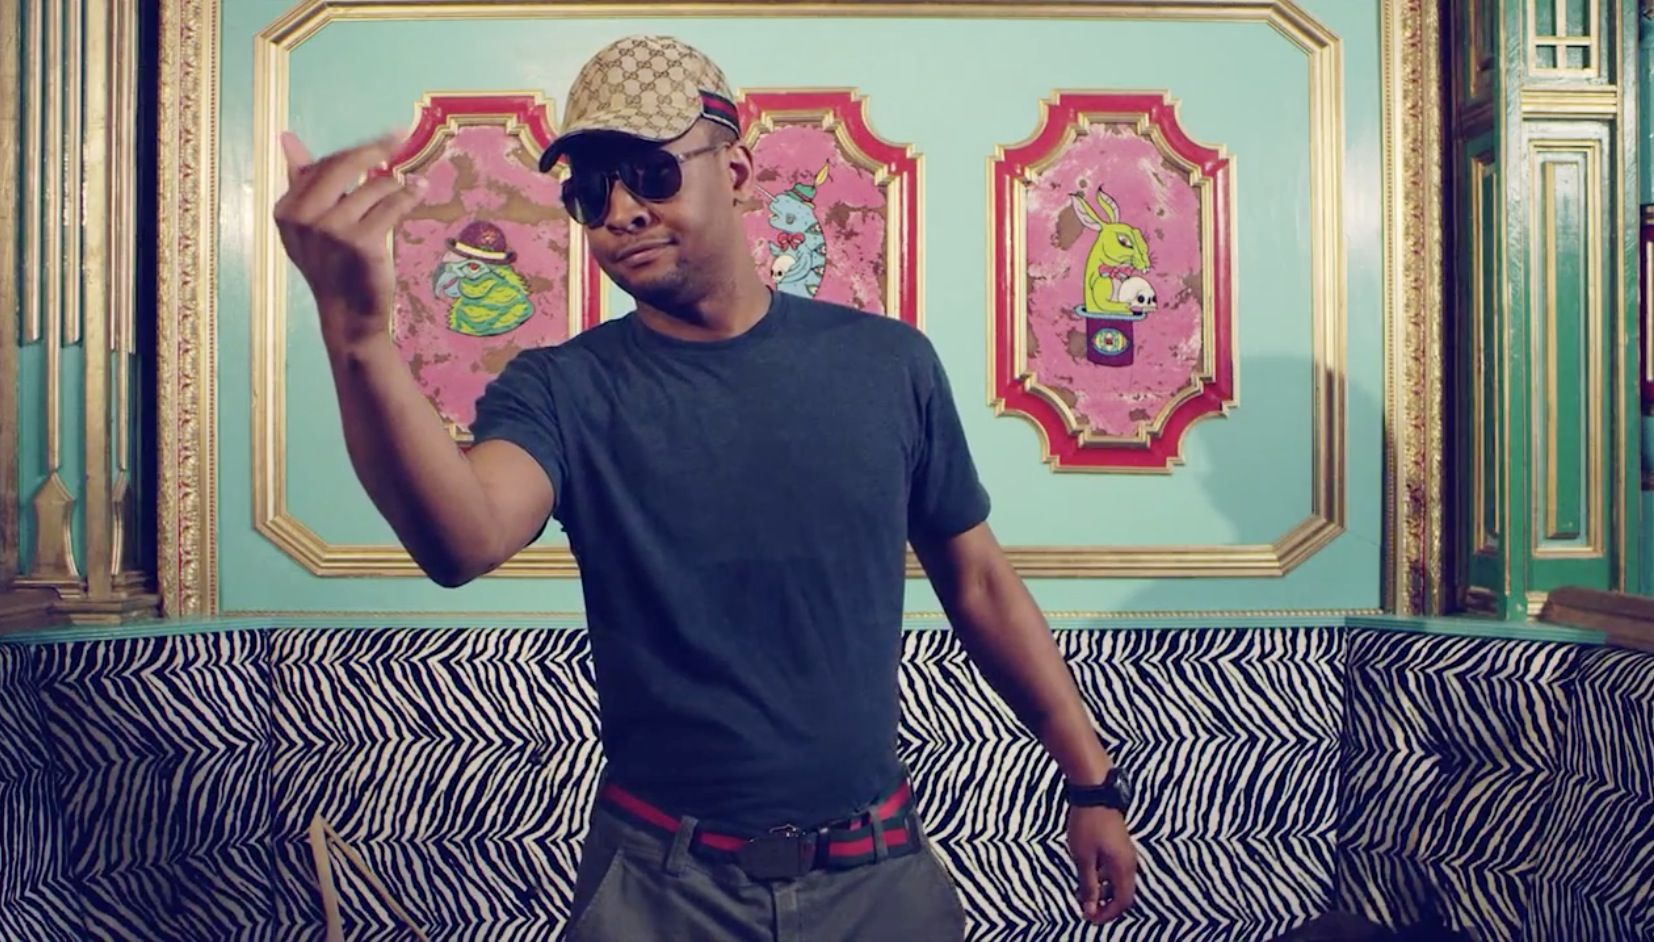 Gucci cap and belt in THRIFT SHOP by Macklemore   Ryan Lewis (2012)  gucci f64b84f6e36